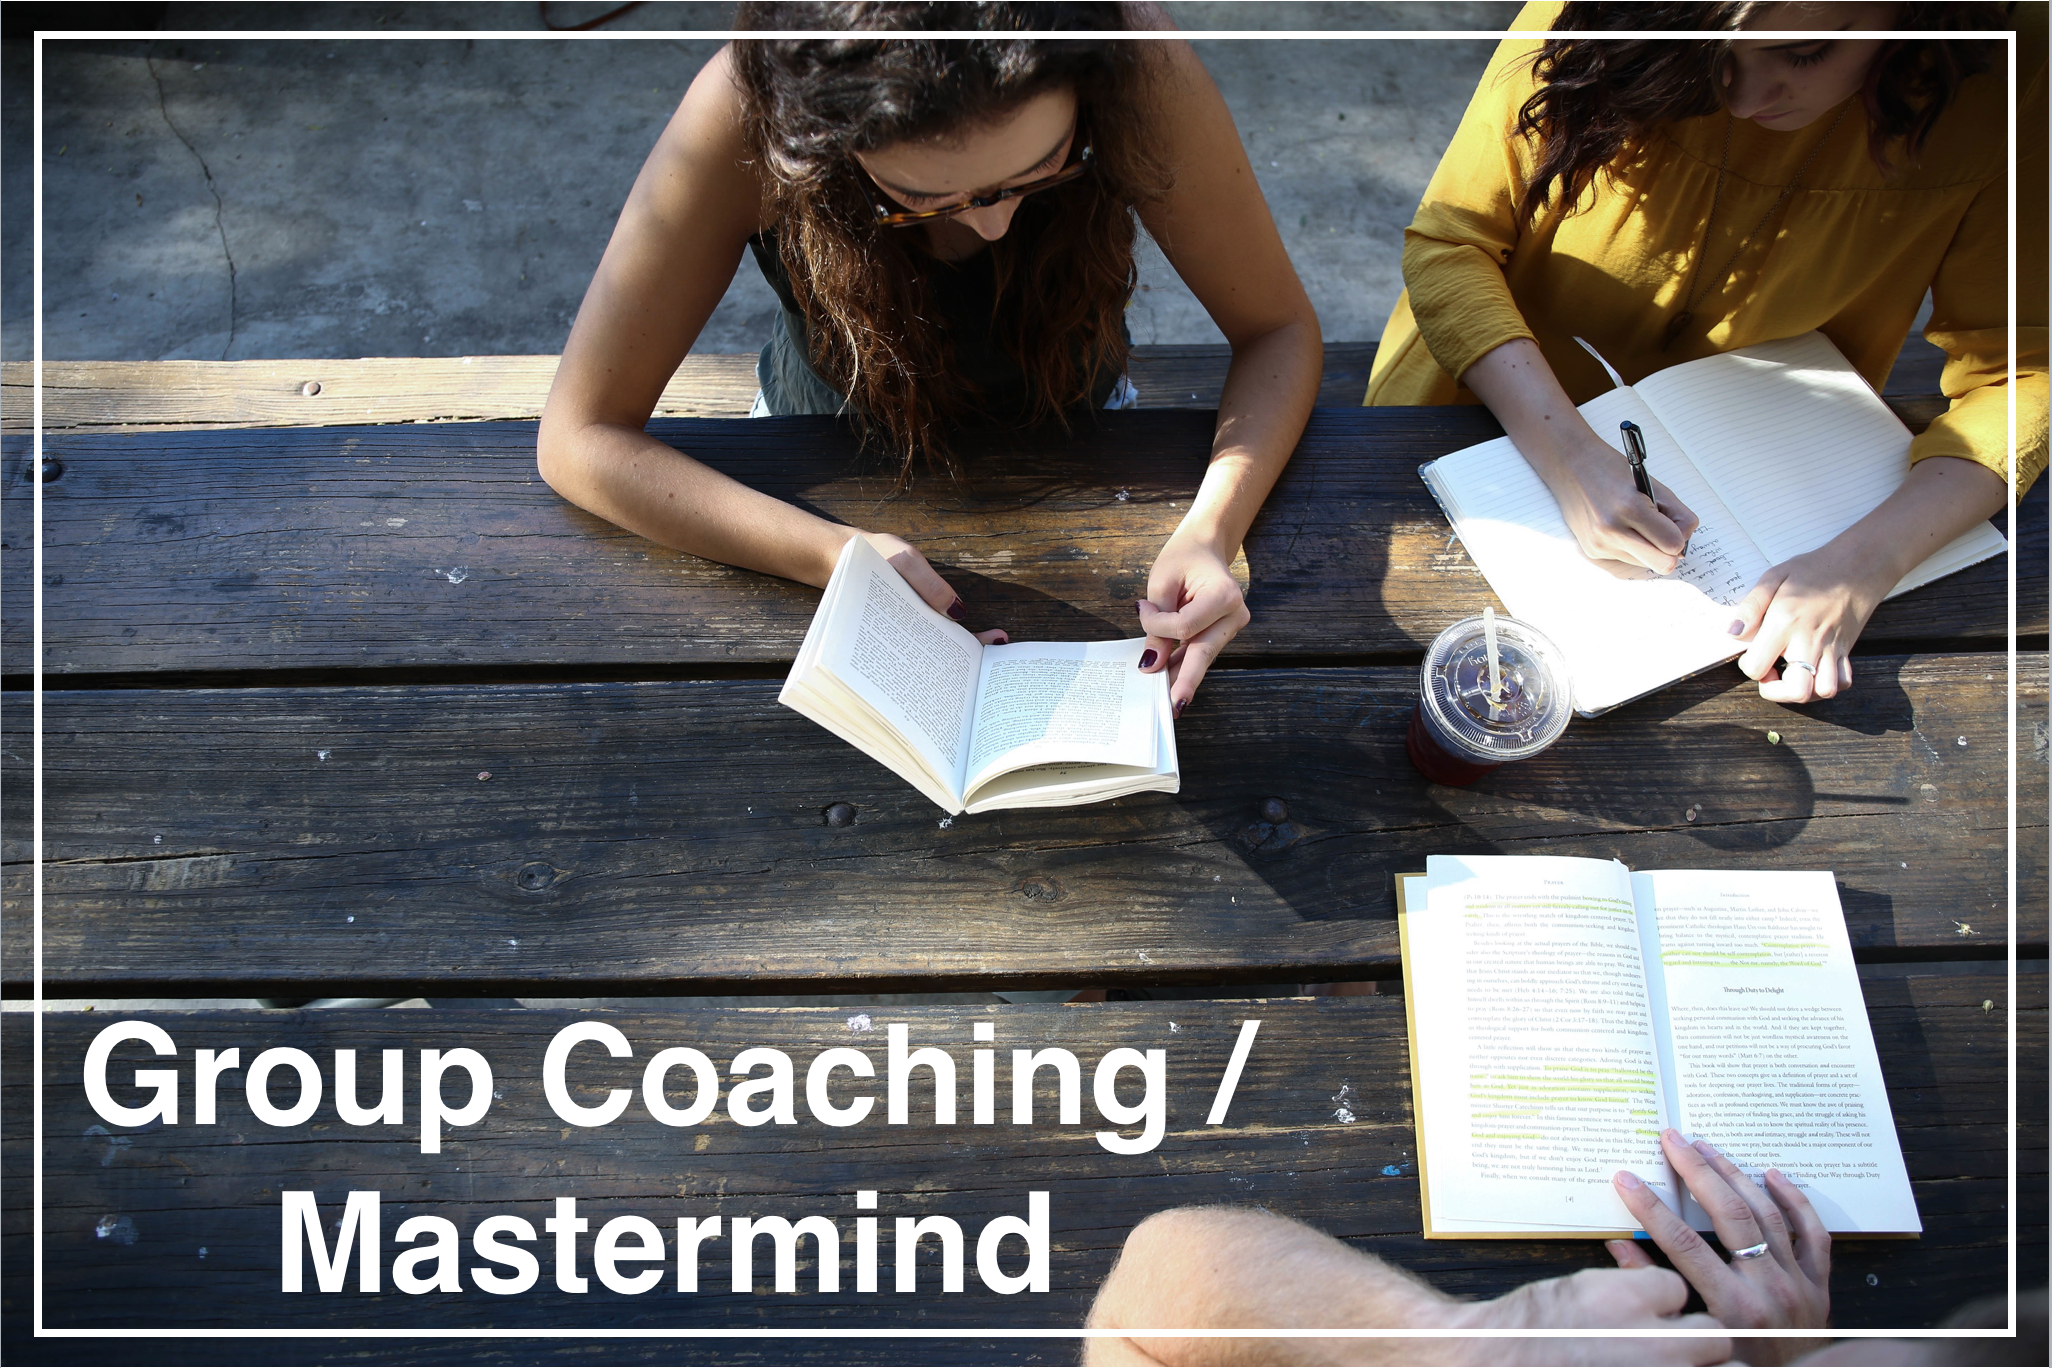 Group Coaching / Mastermind